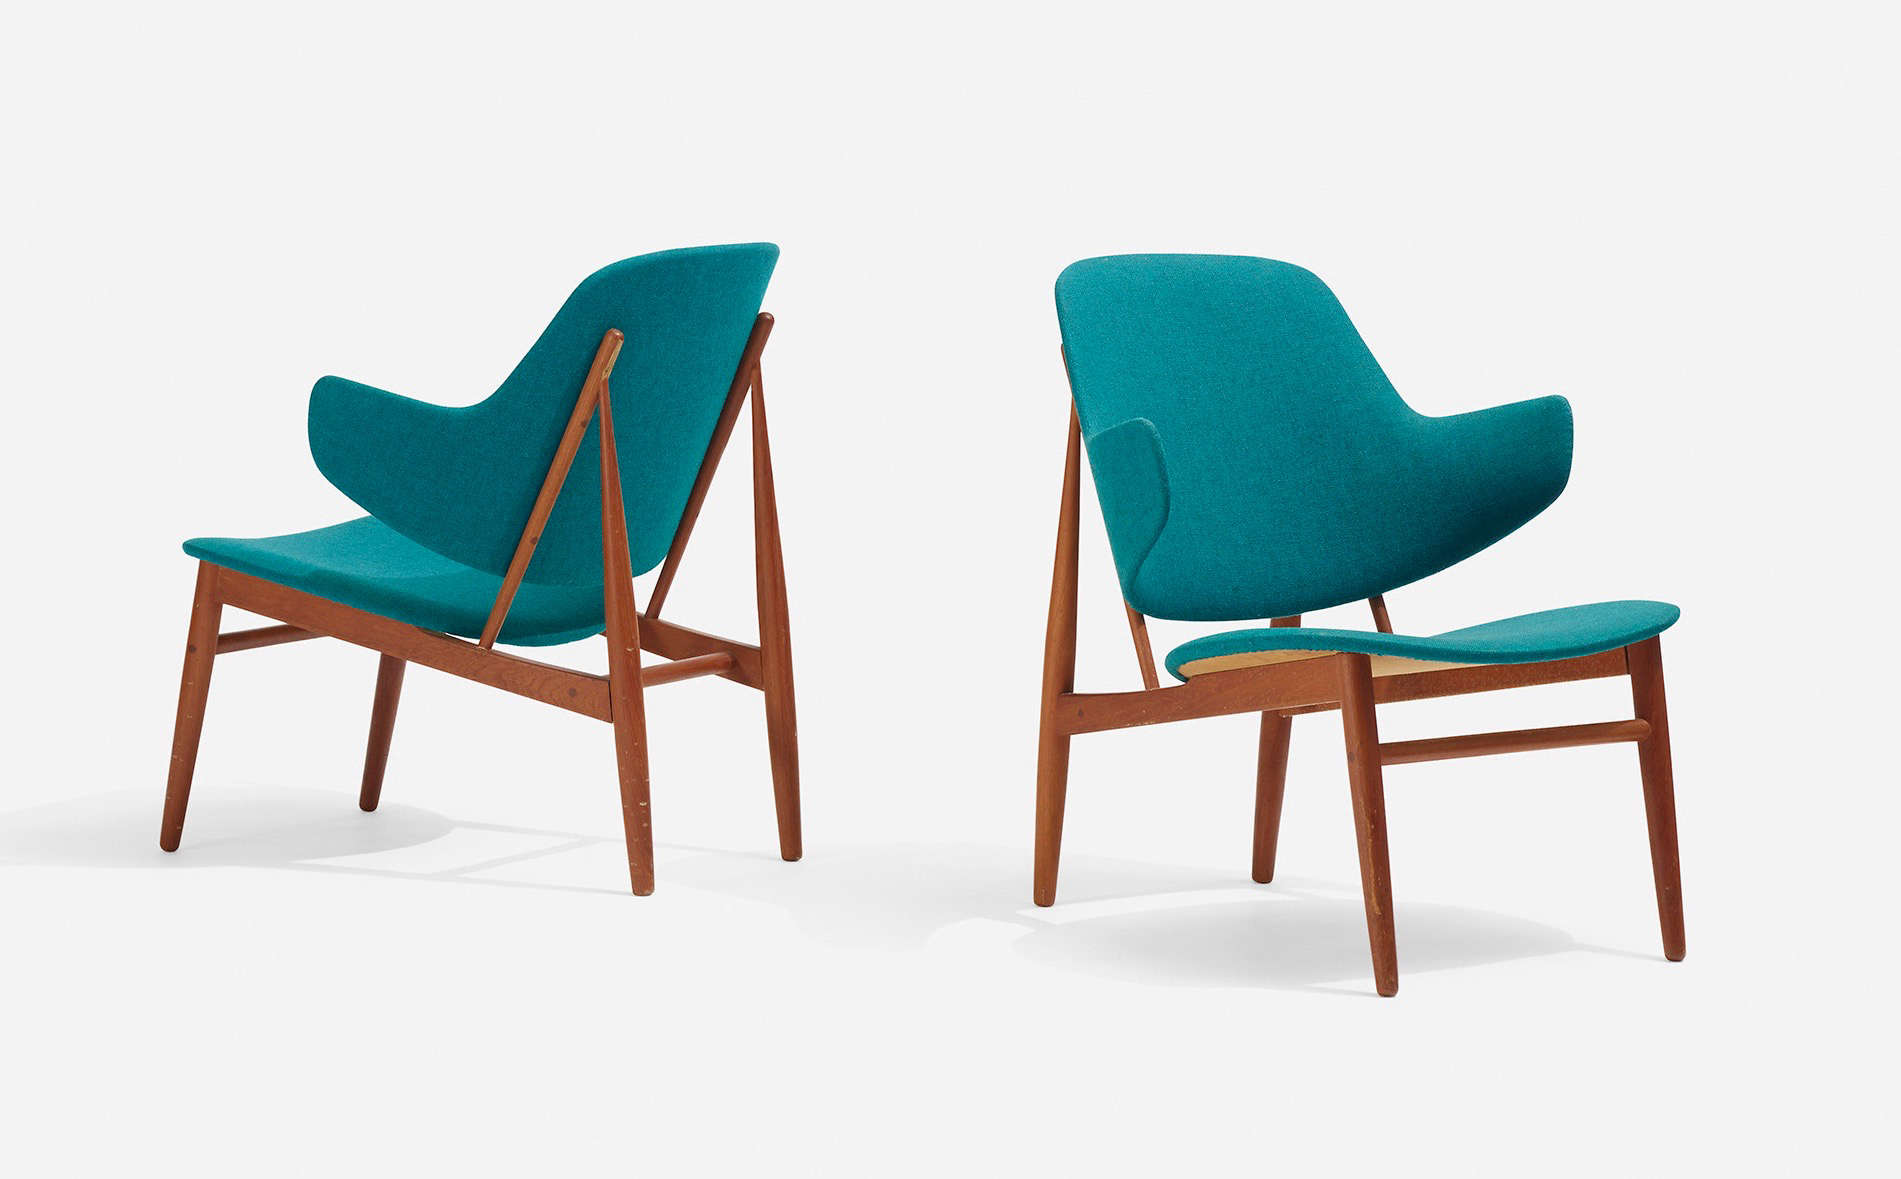 Object Lessons The Penguin Chair a Midcentury Best Seller Is Back Ib Kofod Larsen lounge chairs at Wright Now, Chicago | Remodelista